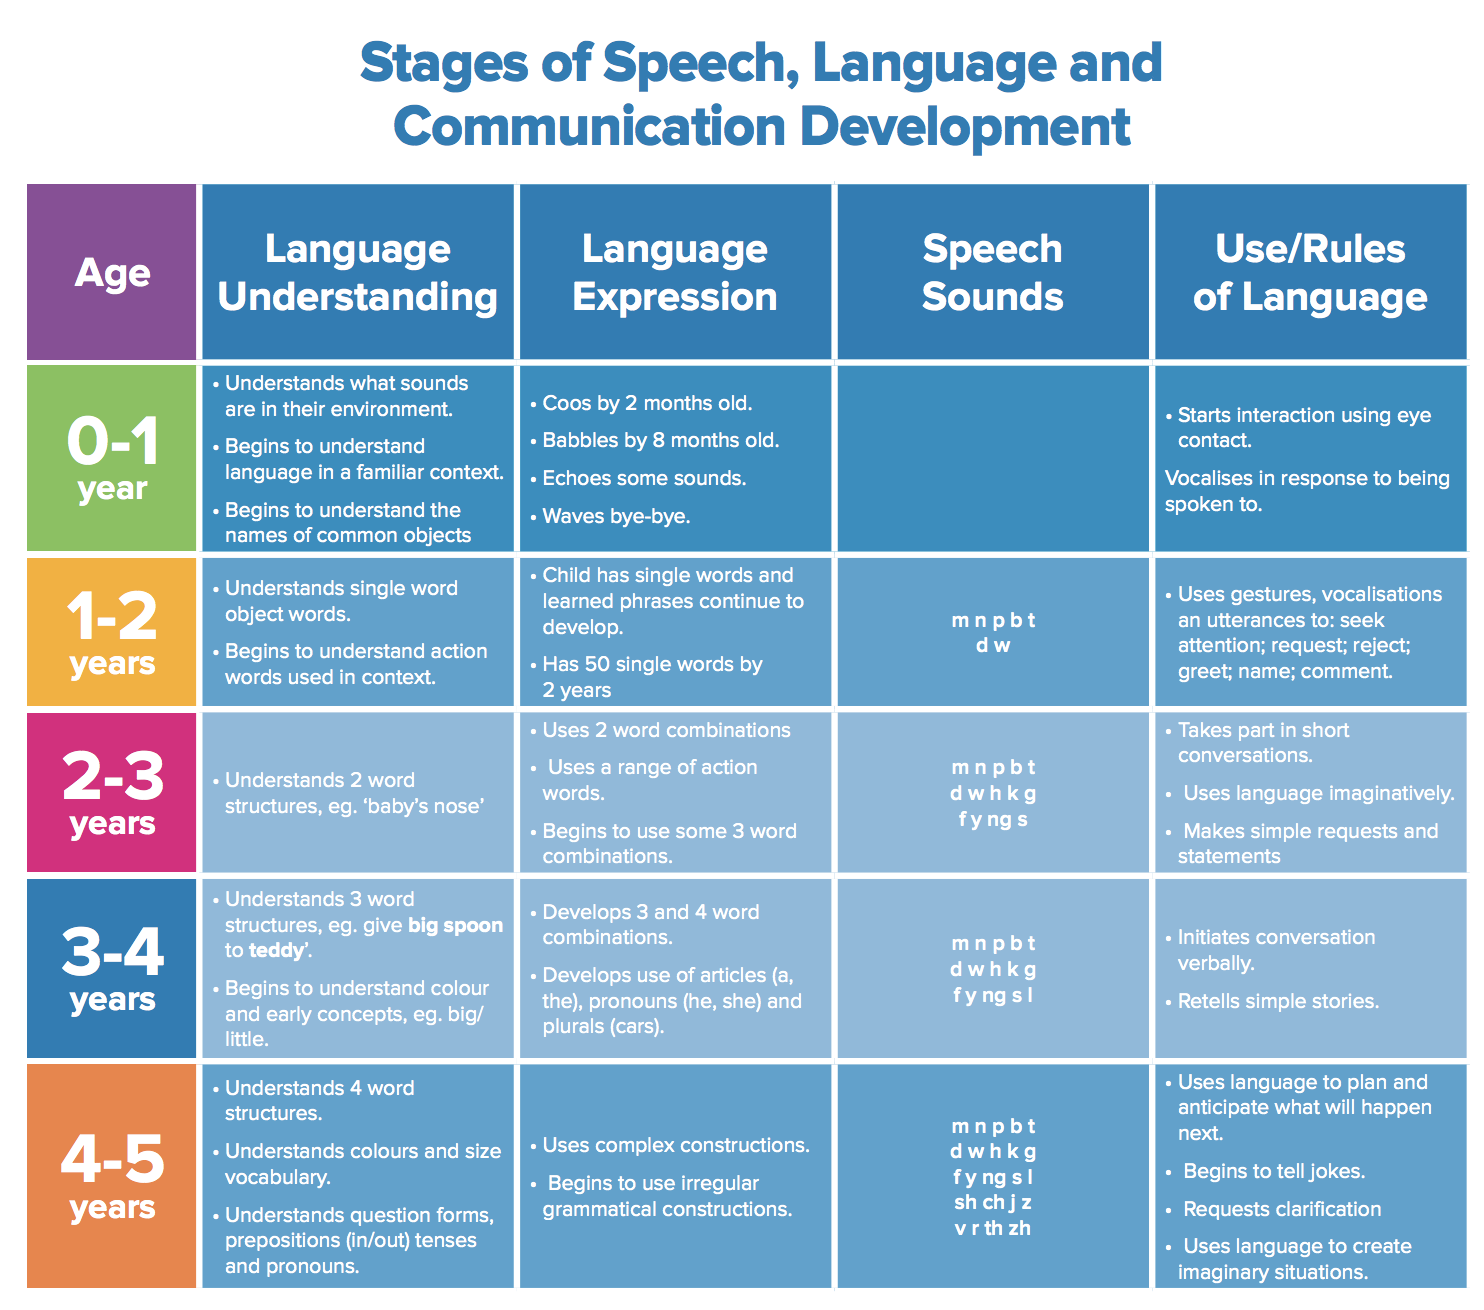 Stages of Speech, Language and Communication Development.png